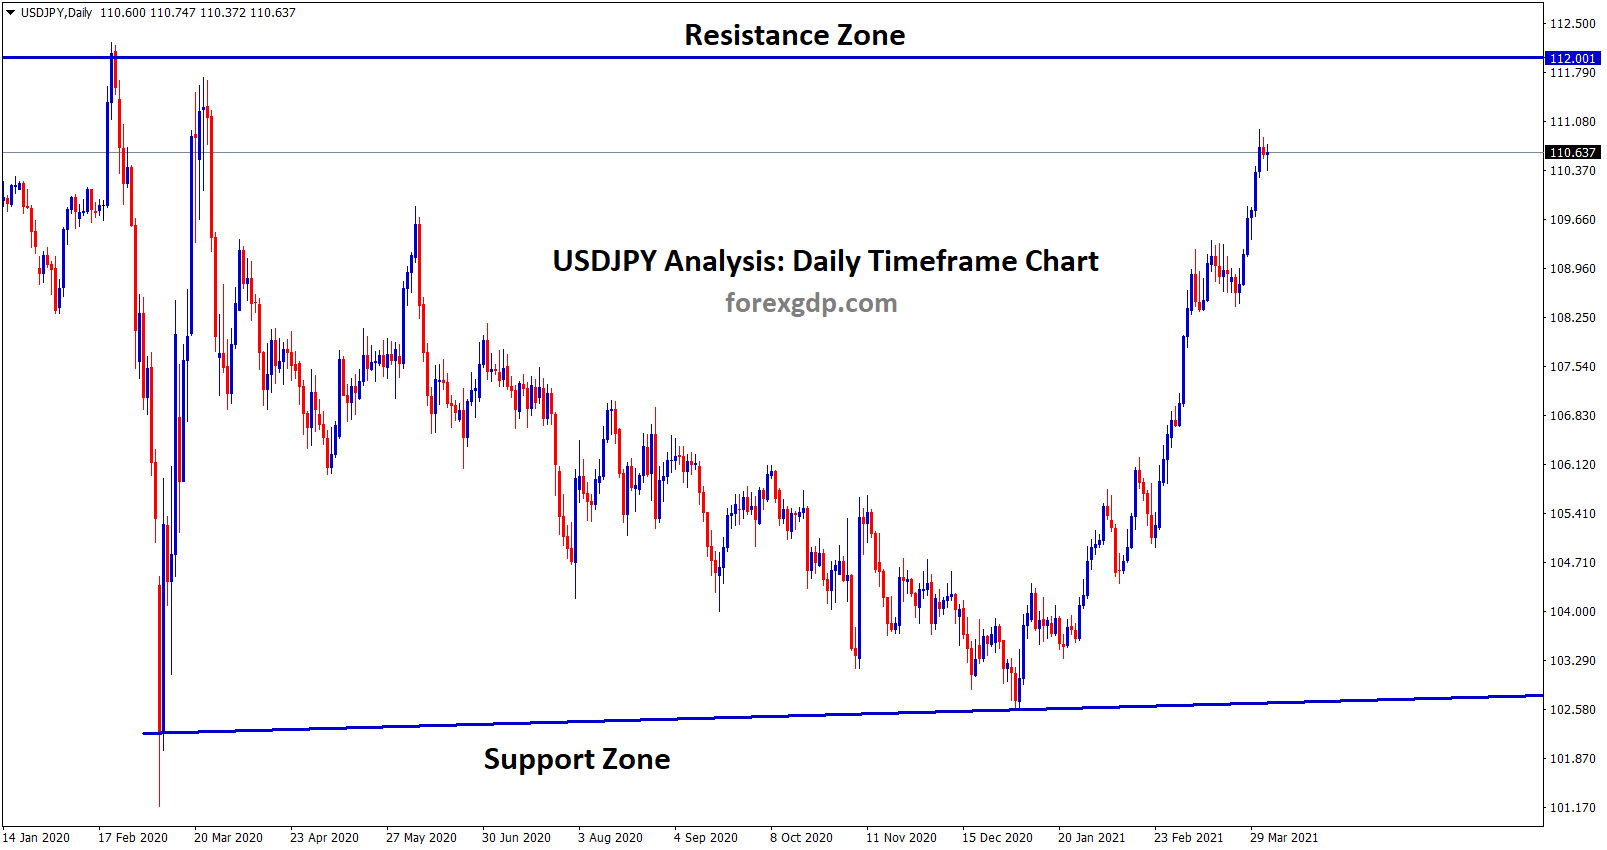 USDJPY going to reach the Resistance zone 112